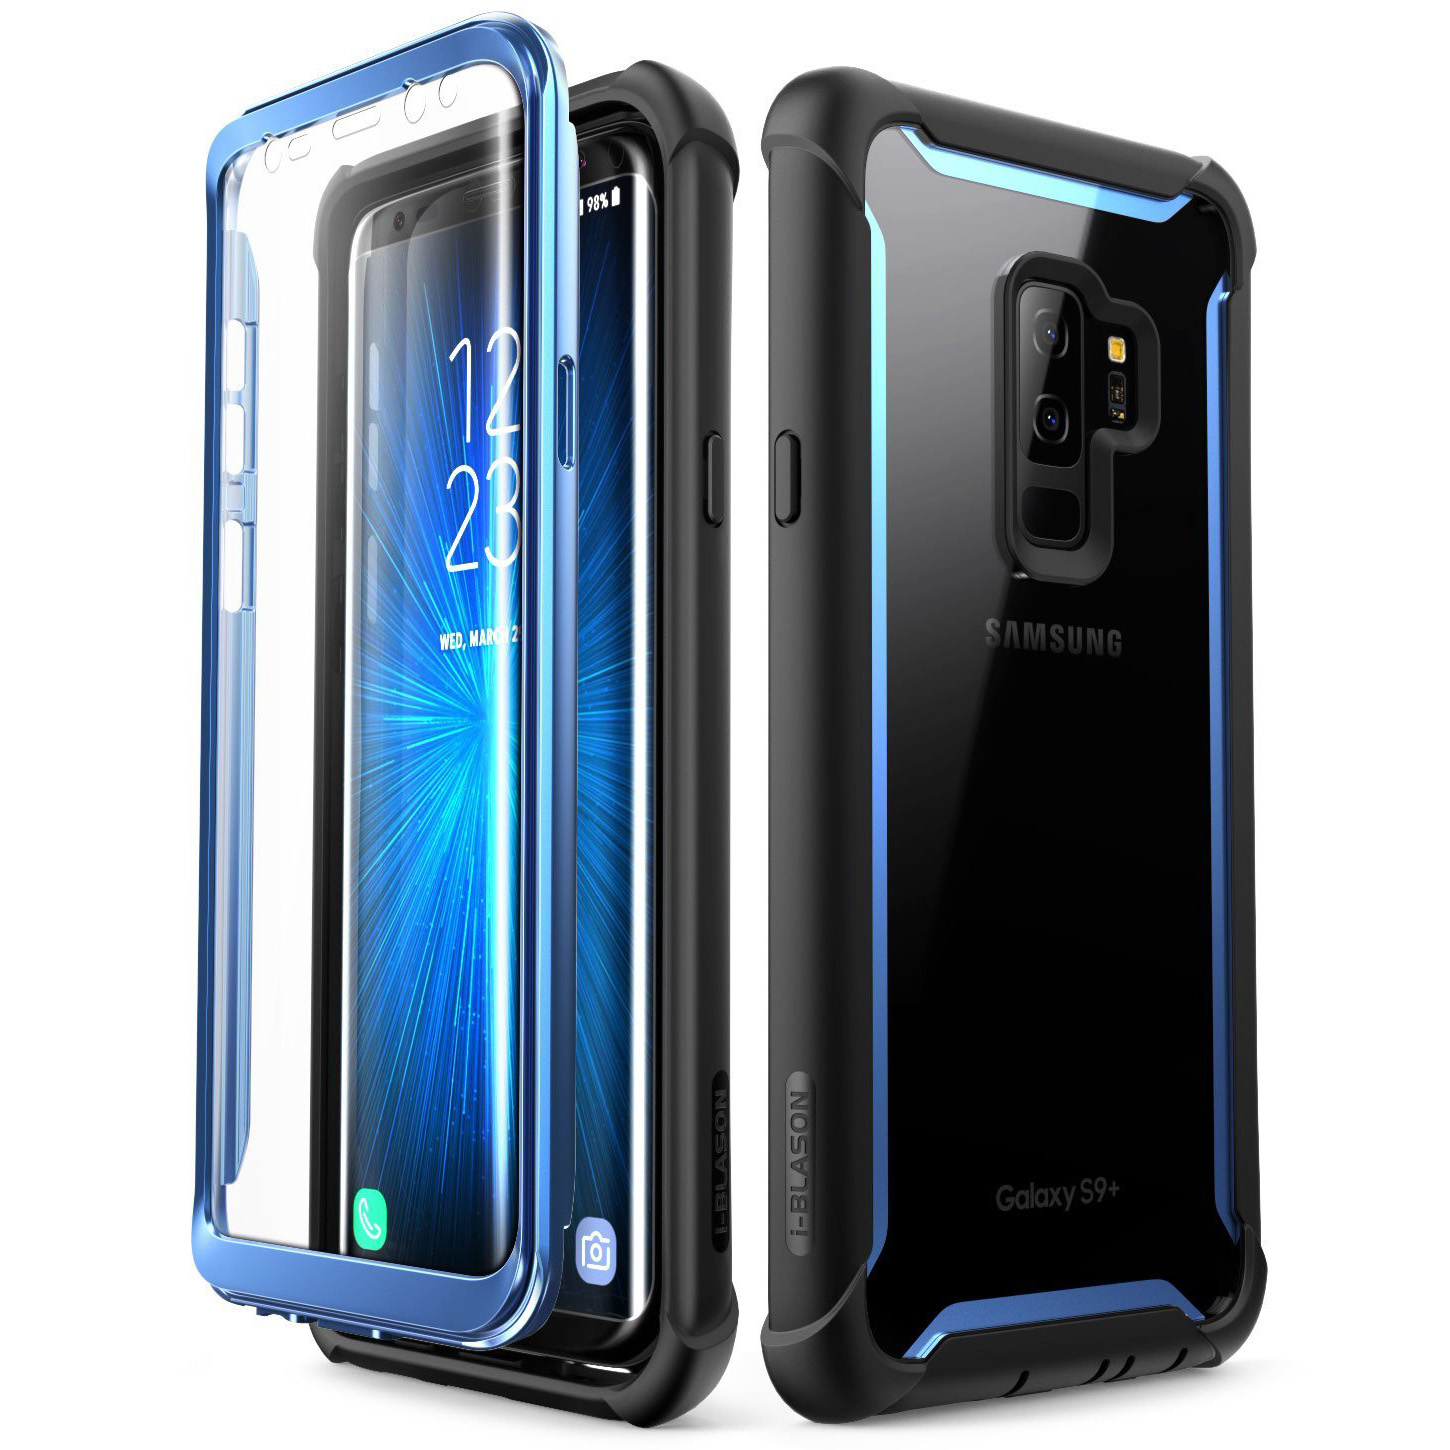 Etui pancerne Supcase i-Blason Ares do Galaxy S9 Plus